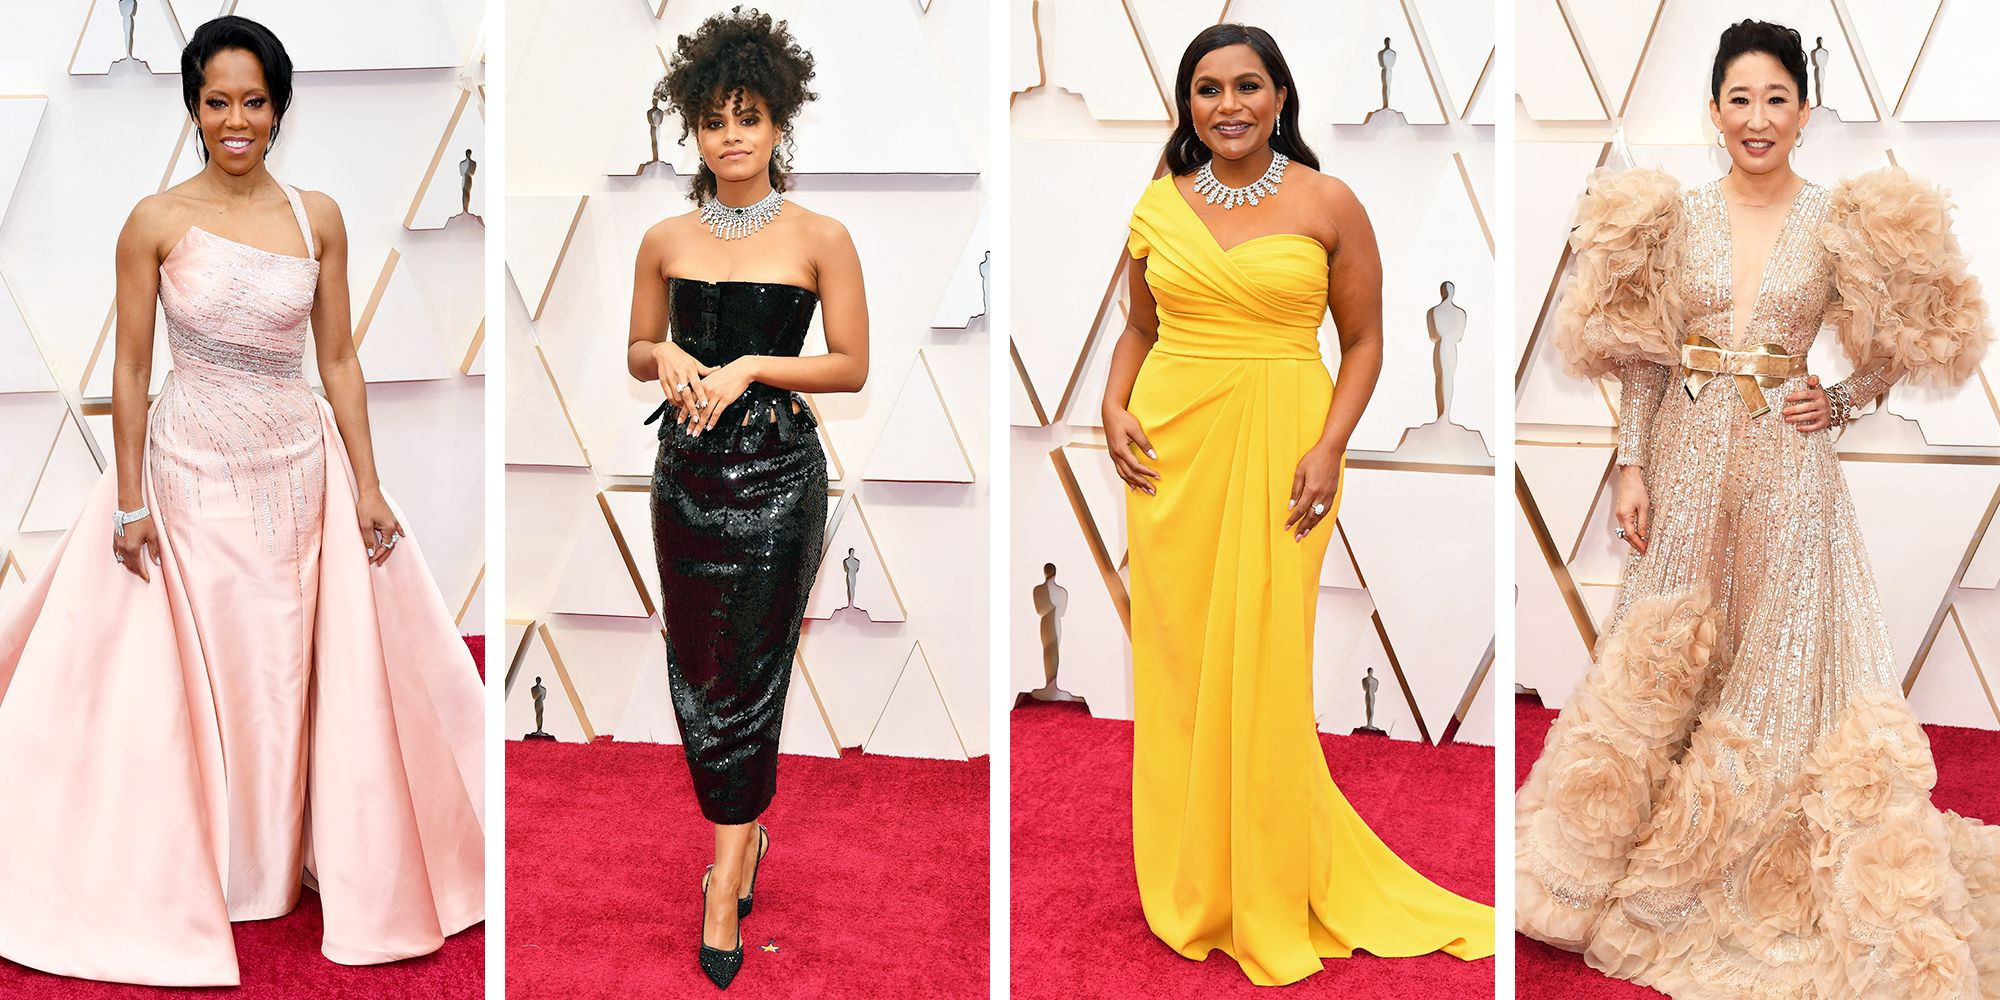 All the Looks From the 2020 Oscars Red Carpet